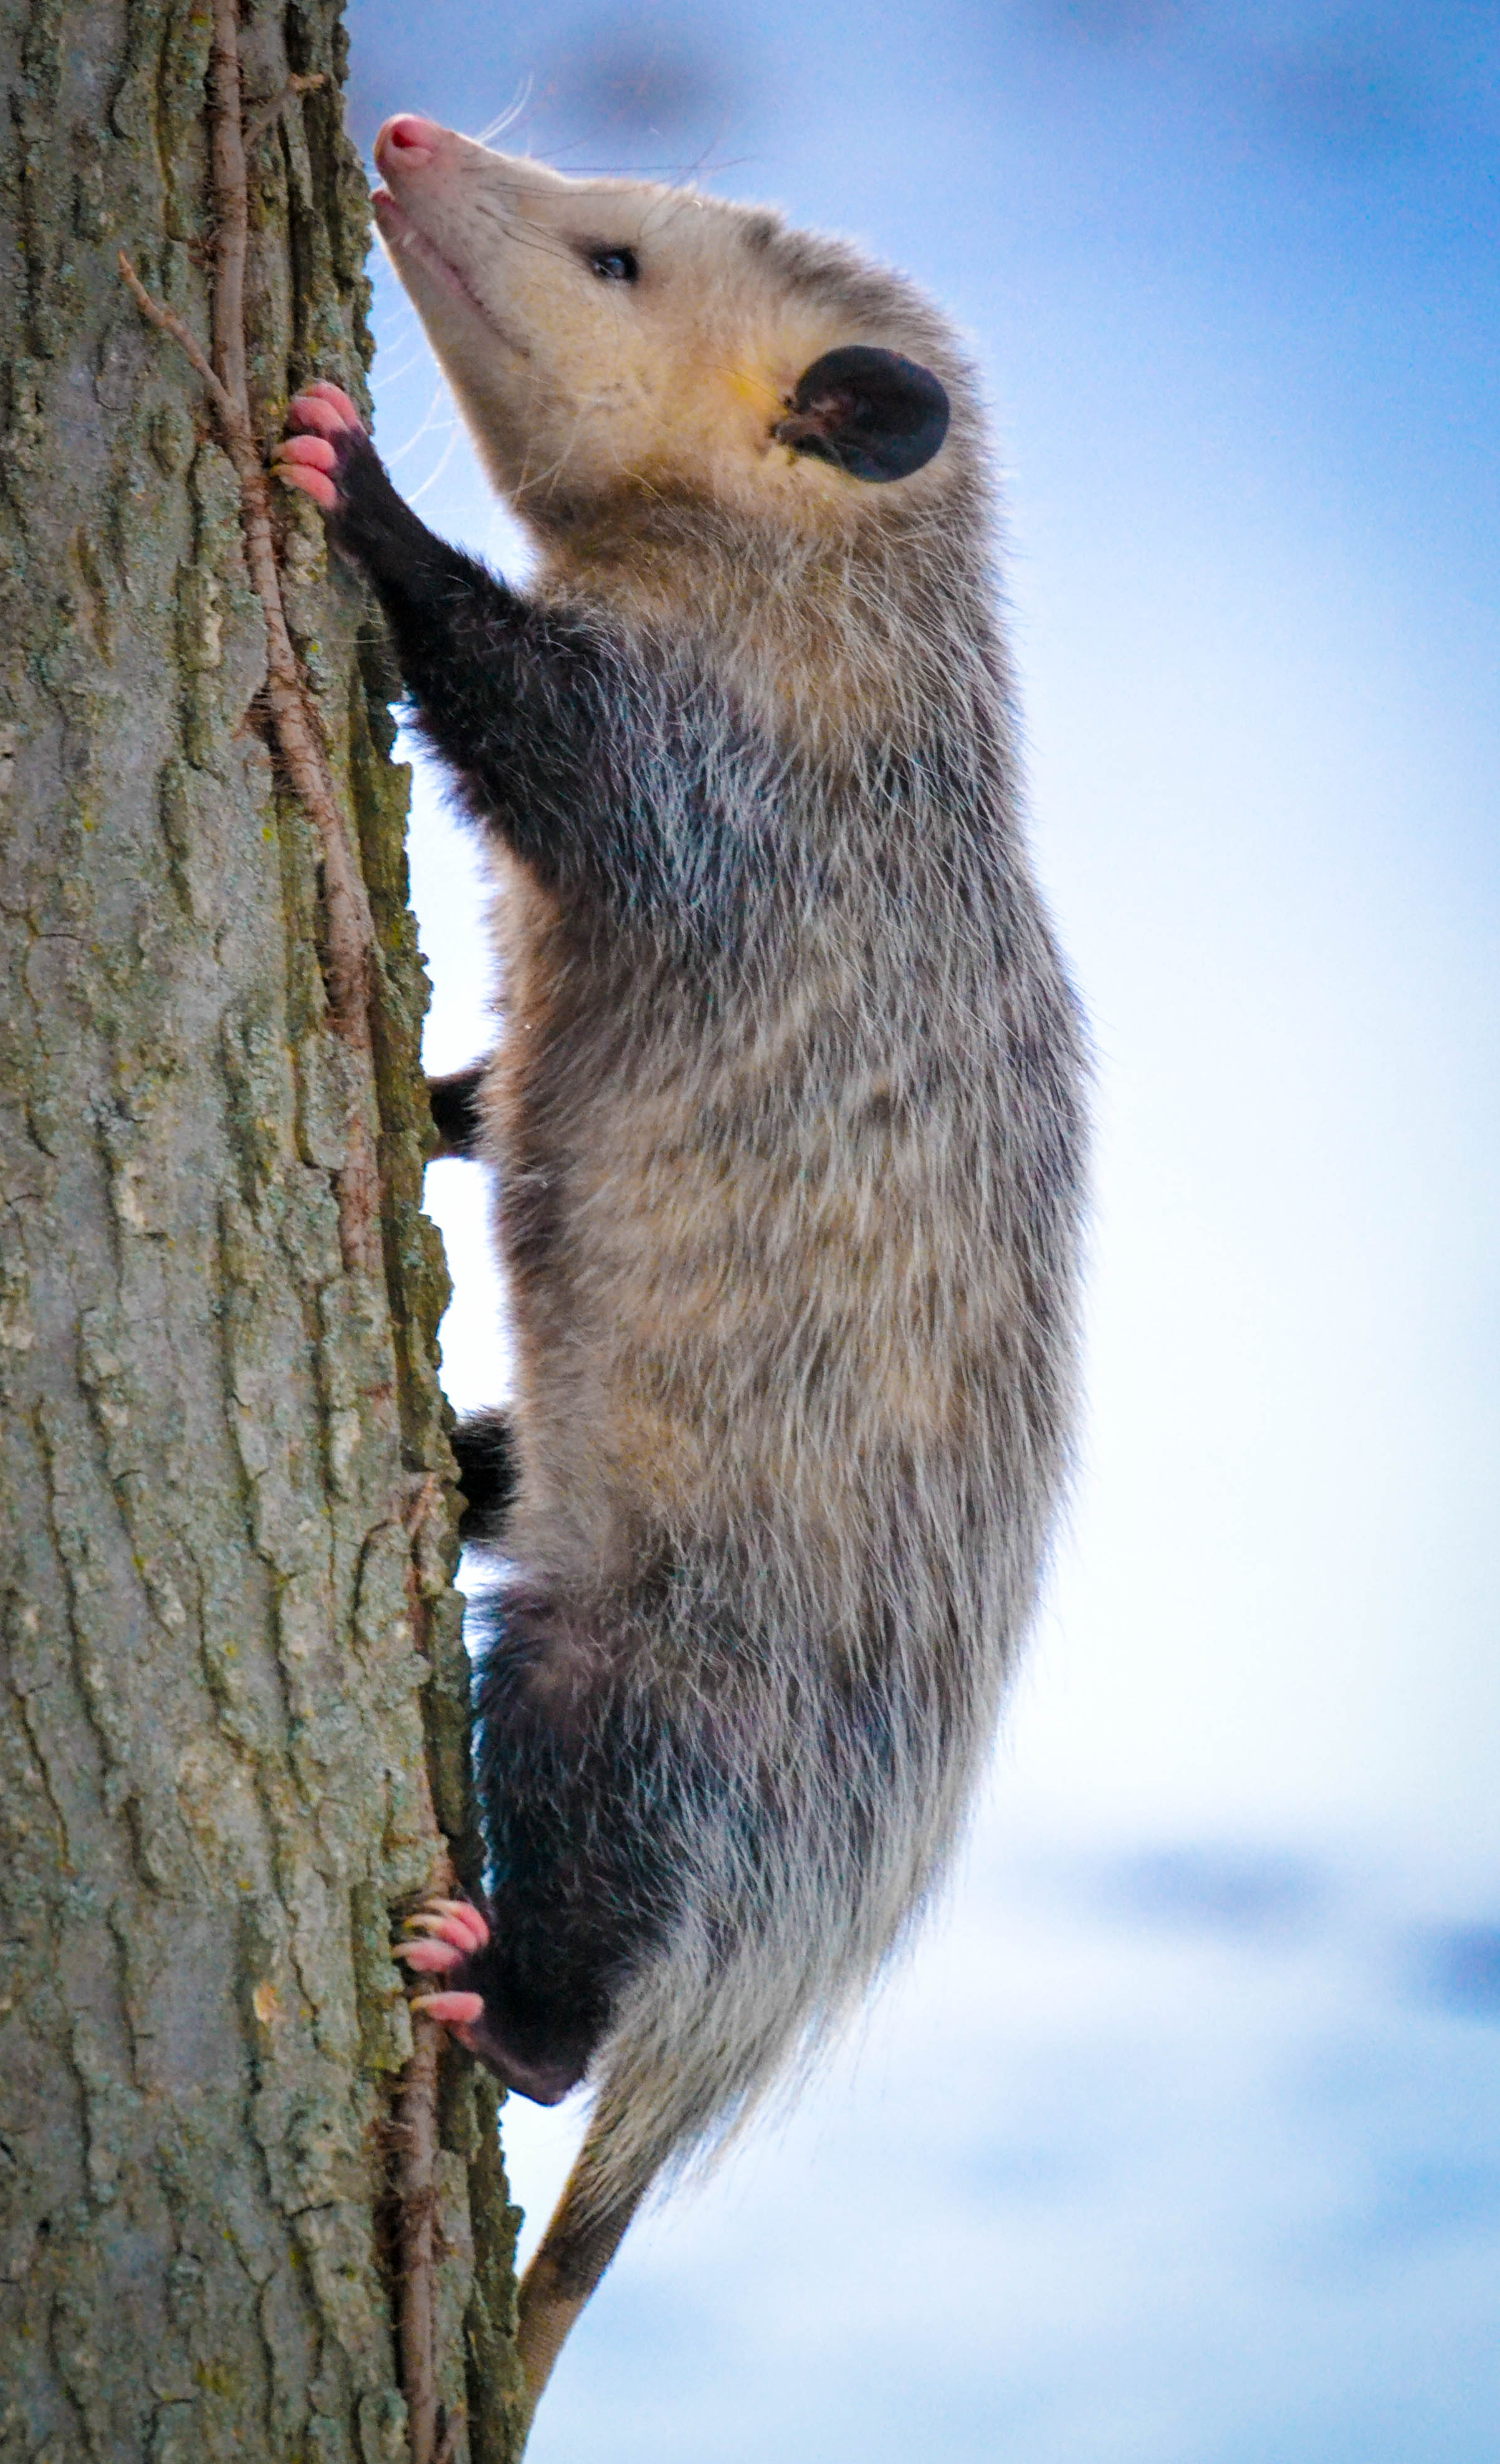 An opossum climbs straight up on a tree. These critters are excellent night-time predators. Photo by Andrew Cannizzaro